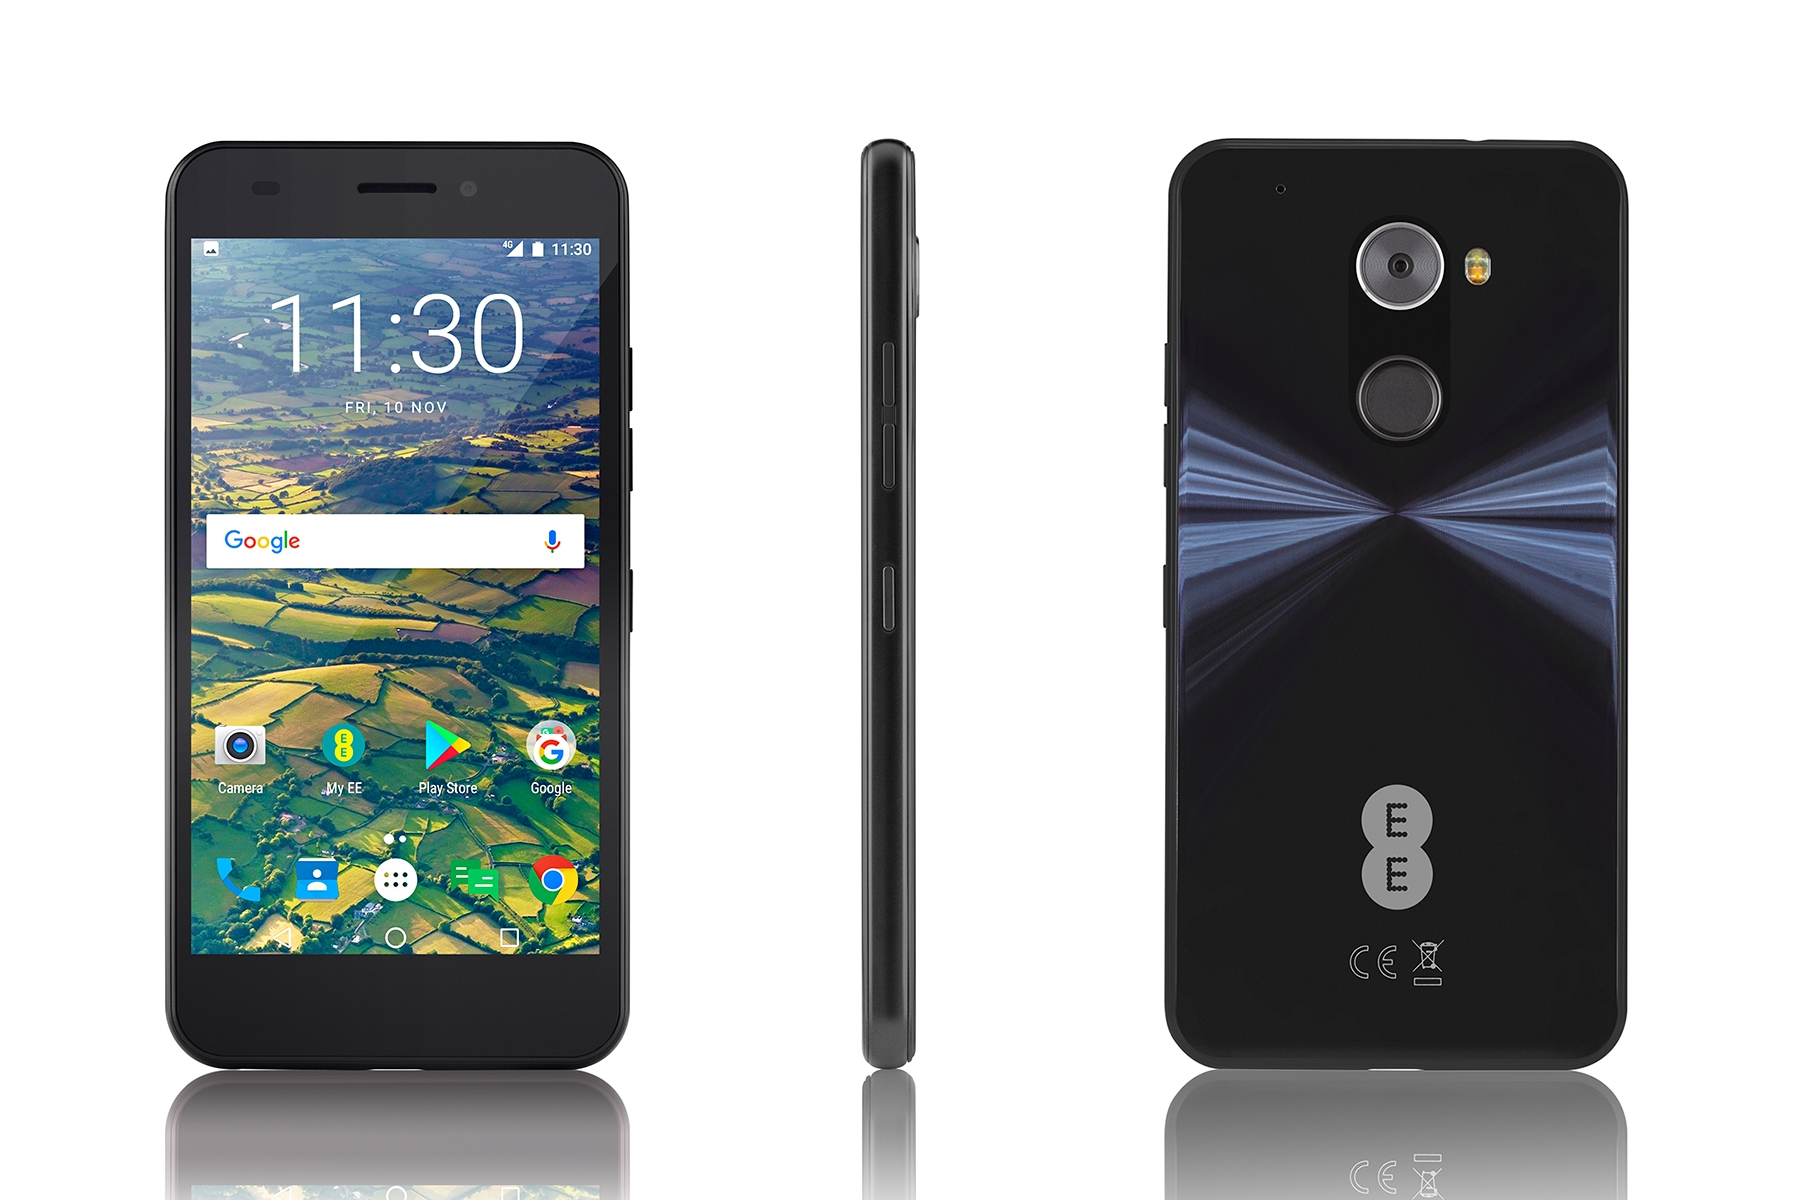 EE's £150 all-glass Hawk phone offers super-fast 4G | DeviceDaily.com